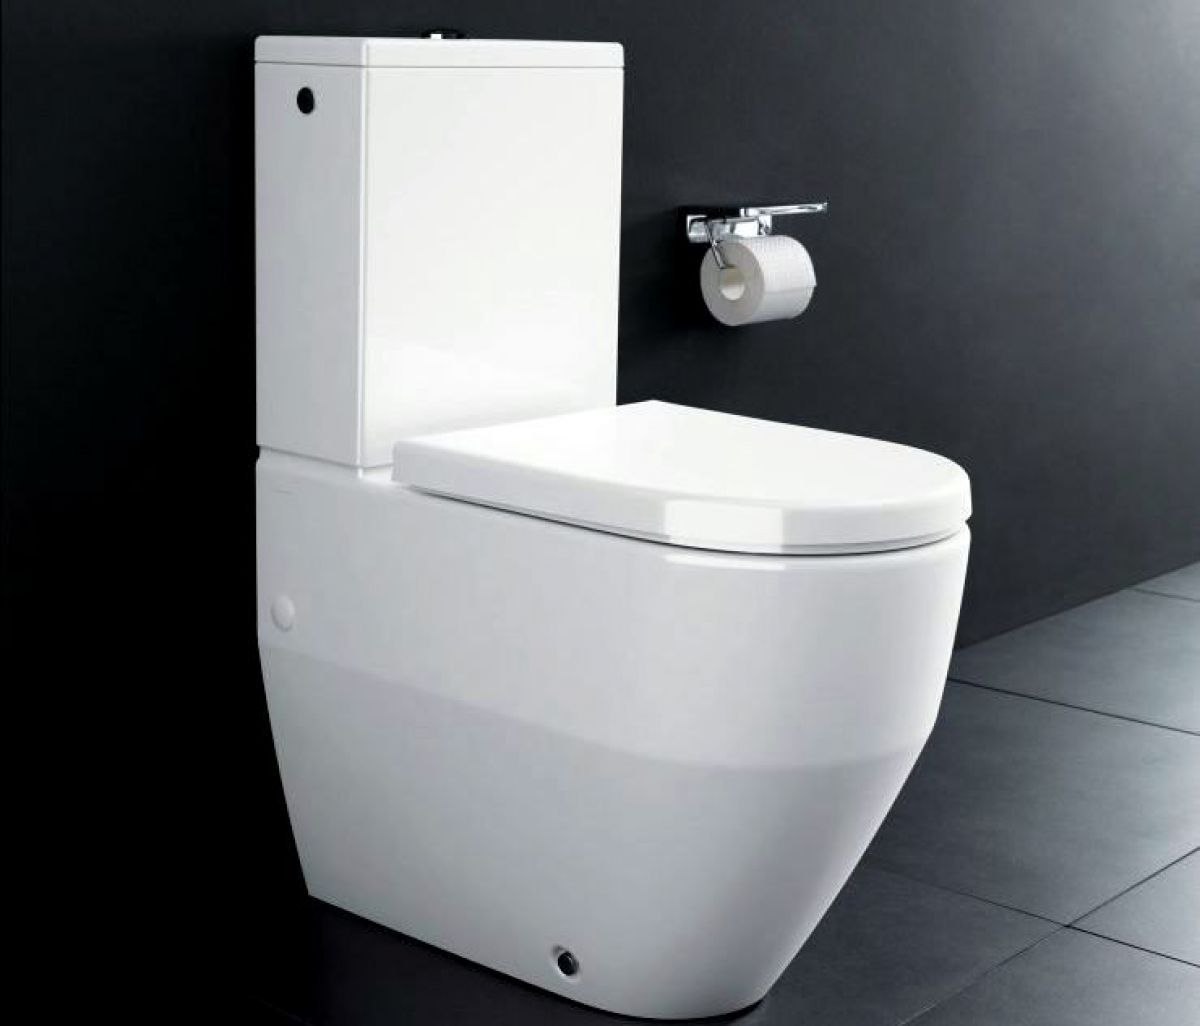 laufen pro close coupled fully back to wall toilet uk bathrooms. Black Bedroom Furniture Sets. Home Design Ideas